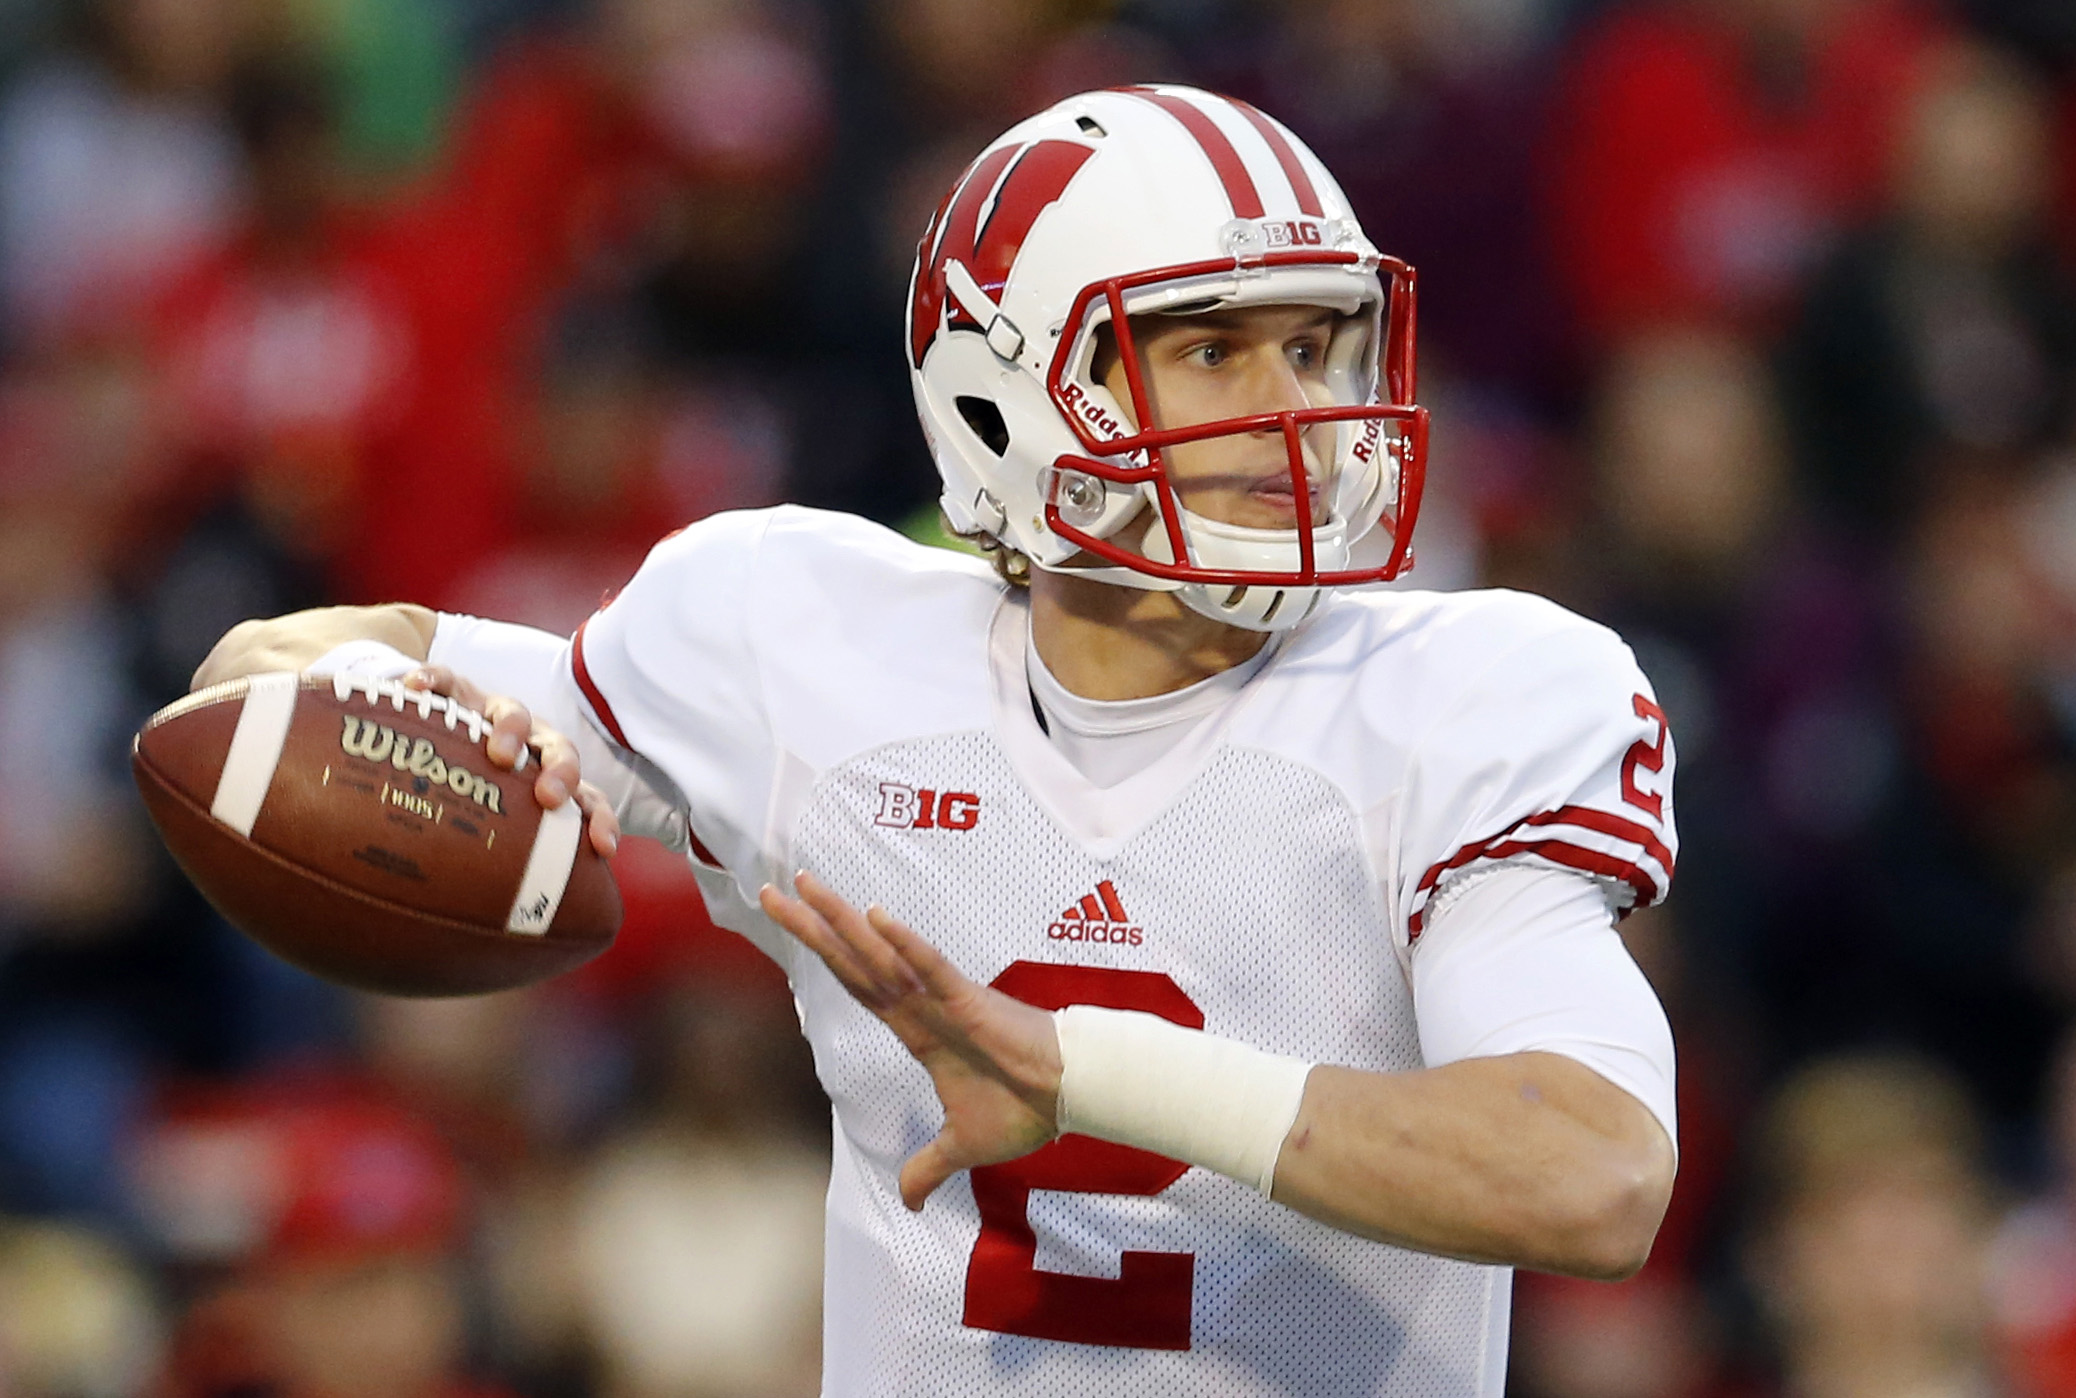 FILE - In this Saturday, Nov. 7, 2015 file photo, Wisconsin quarterback Joel Stave throws to a receiver during an NCAA college football game against Maryland in College Park, Md. Paul Bunyan's Axe is on the line and bowl eligibility for the Gophers _ and